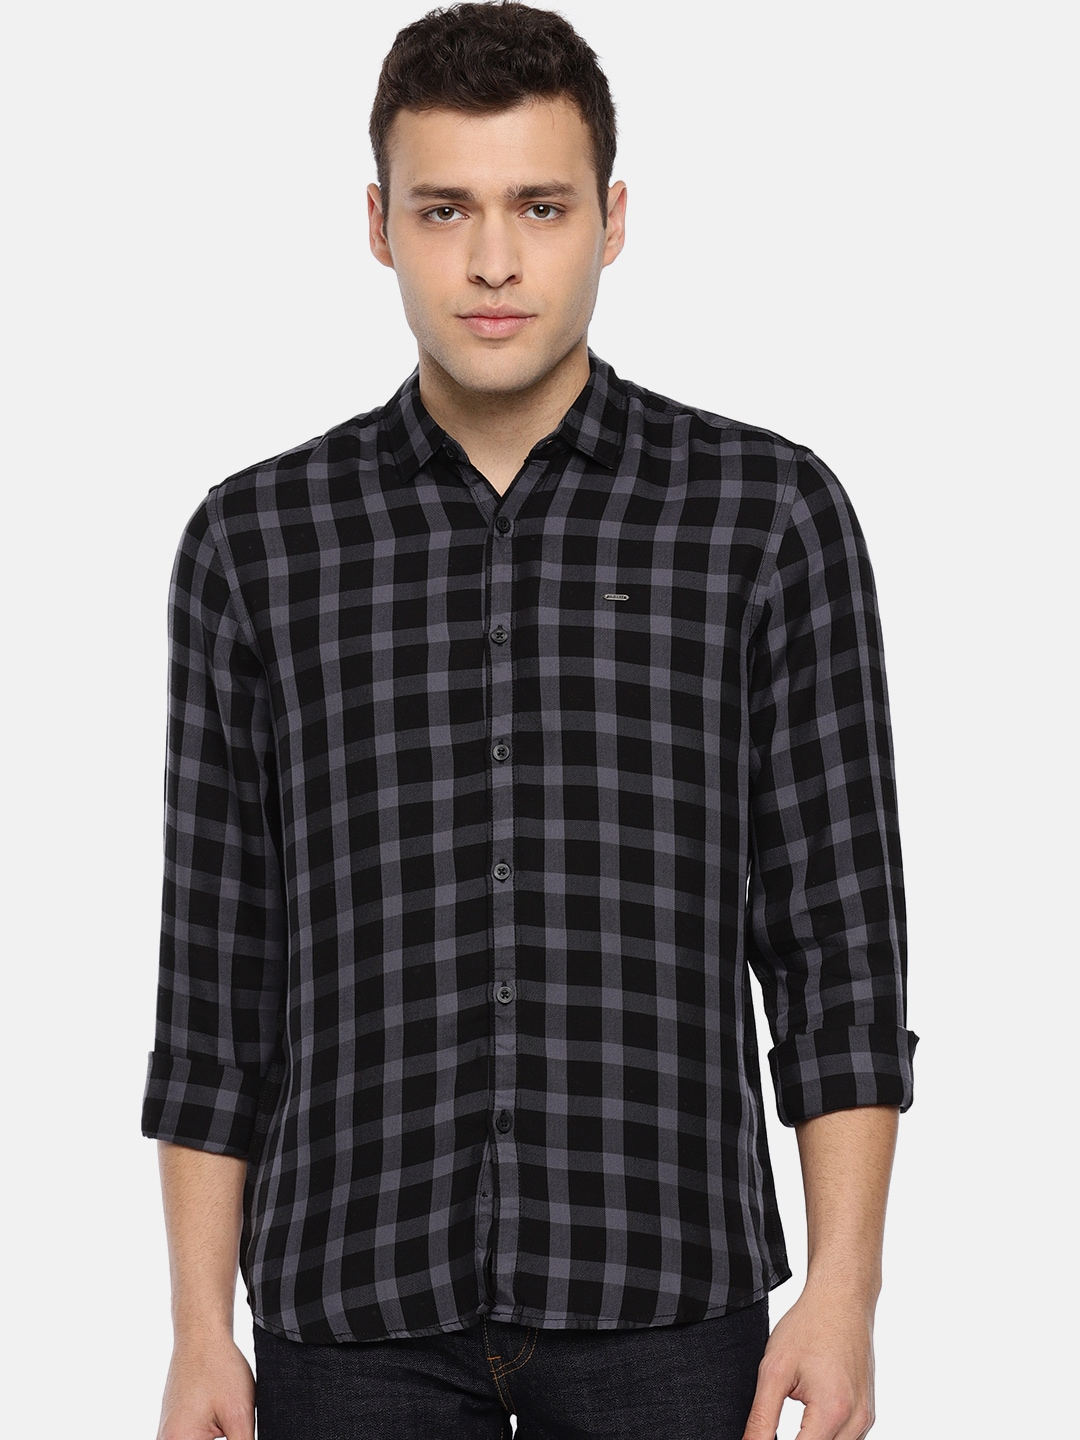 7170bb61f97643 Lee - Exclusive Lee Online Store in India at Myntra